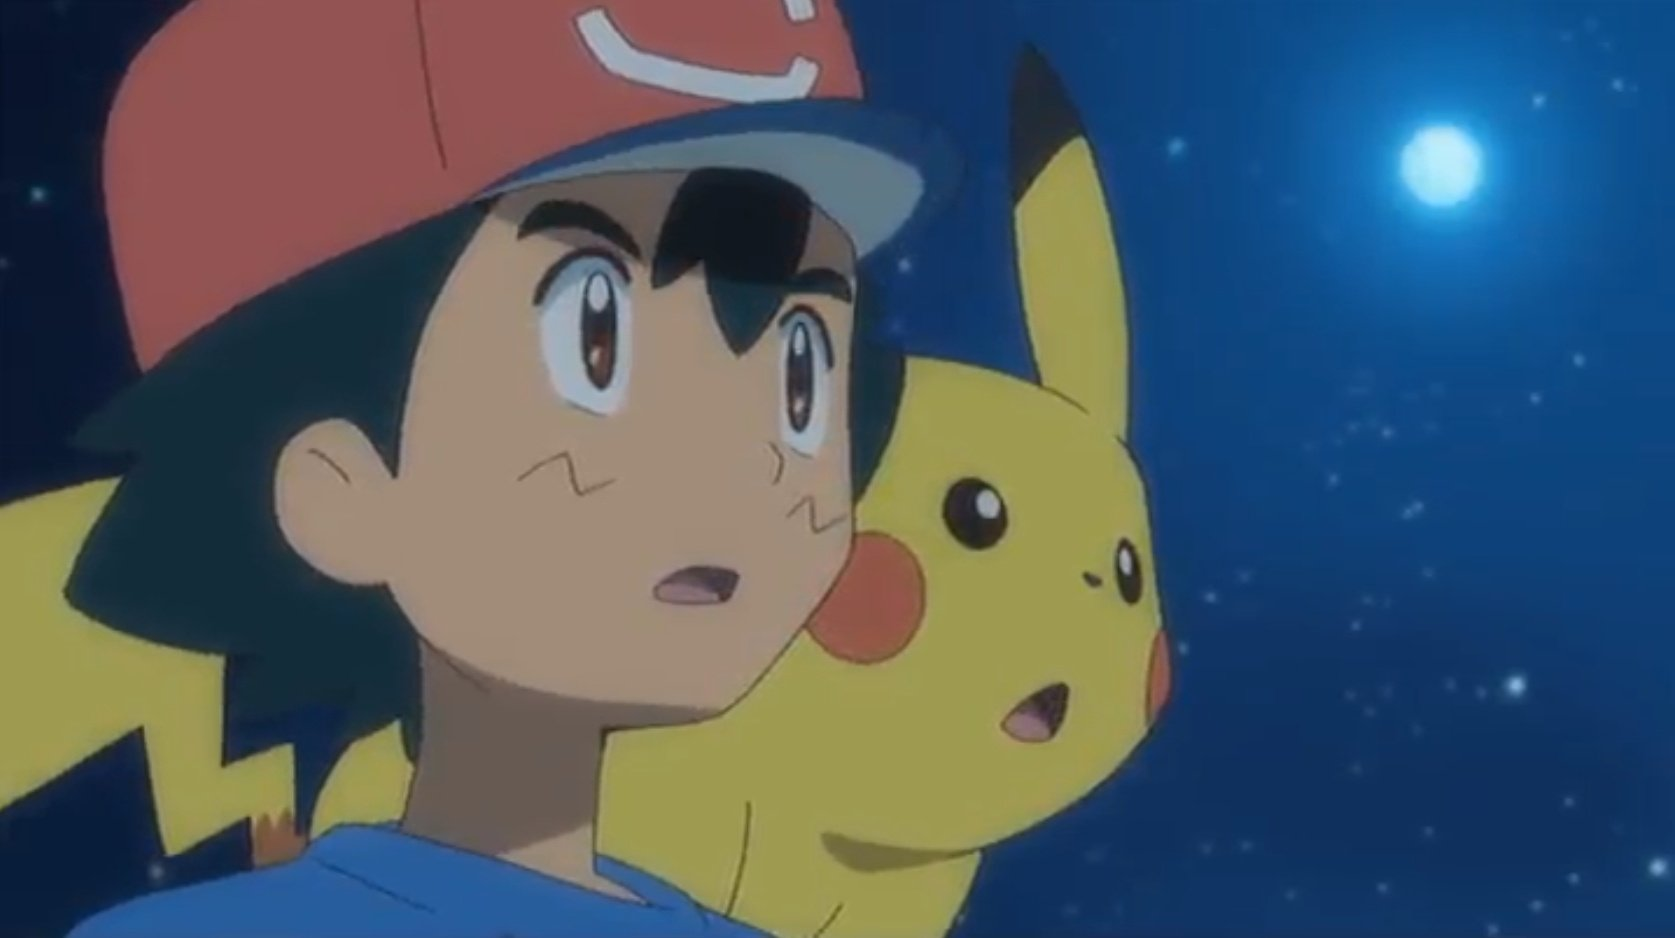 If you enjoy watching the pokémon anime series from time to time and happen to have a subscription to netflix youll be pleased to hear every episode of